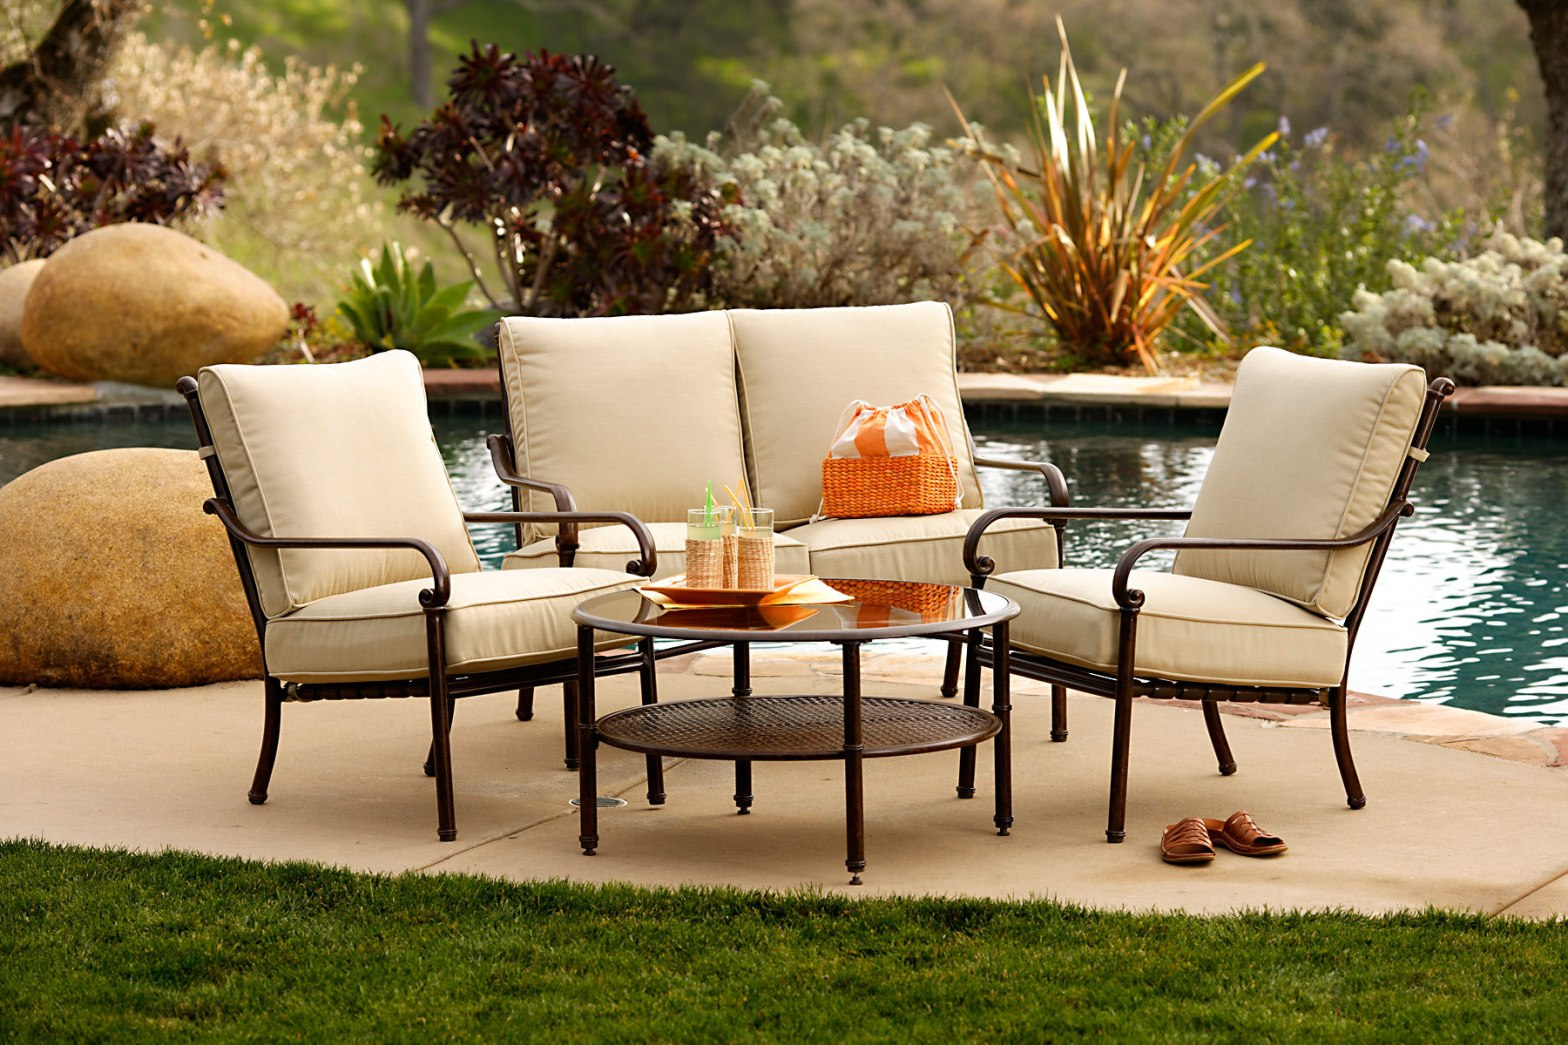 Easy Tips For Thomasville Outdoor Furniture Purchase